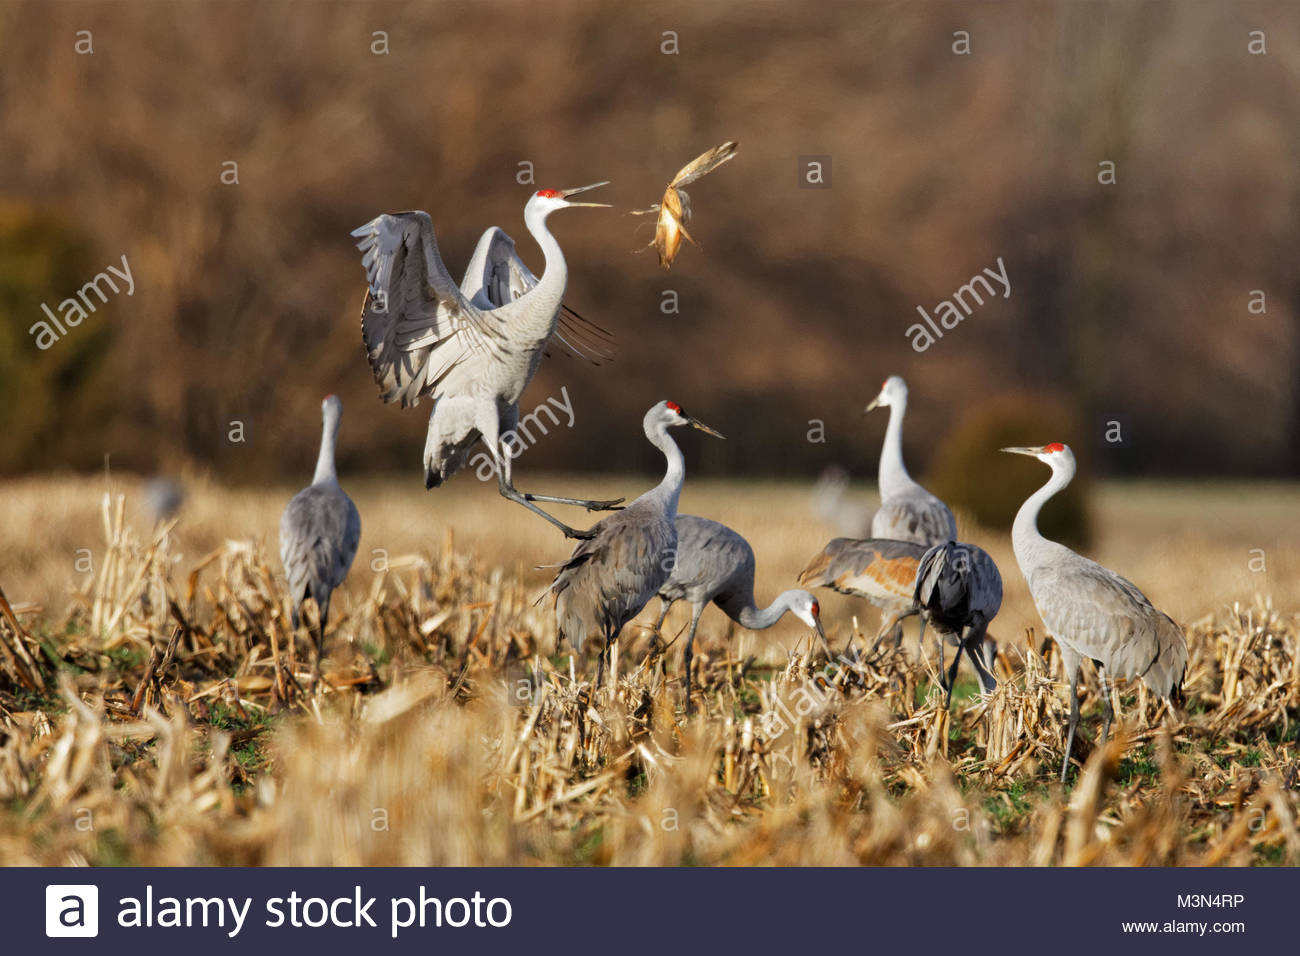 Sandhill Cranes, one jumping and throughing corn shucks into air. - Stock Image